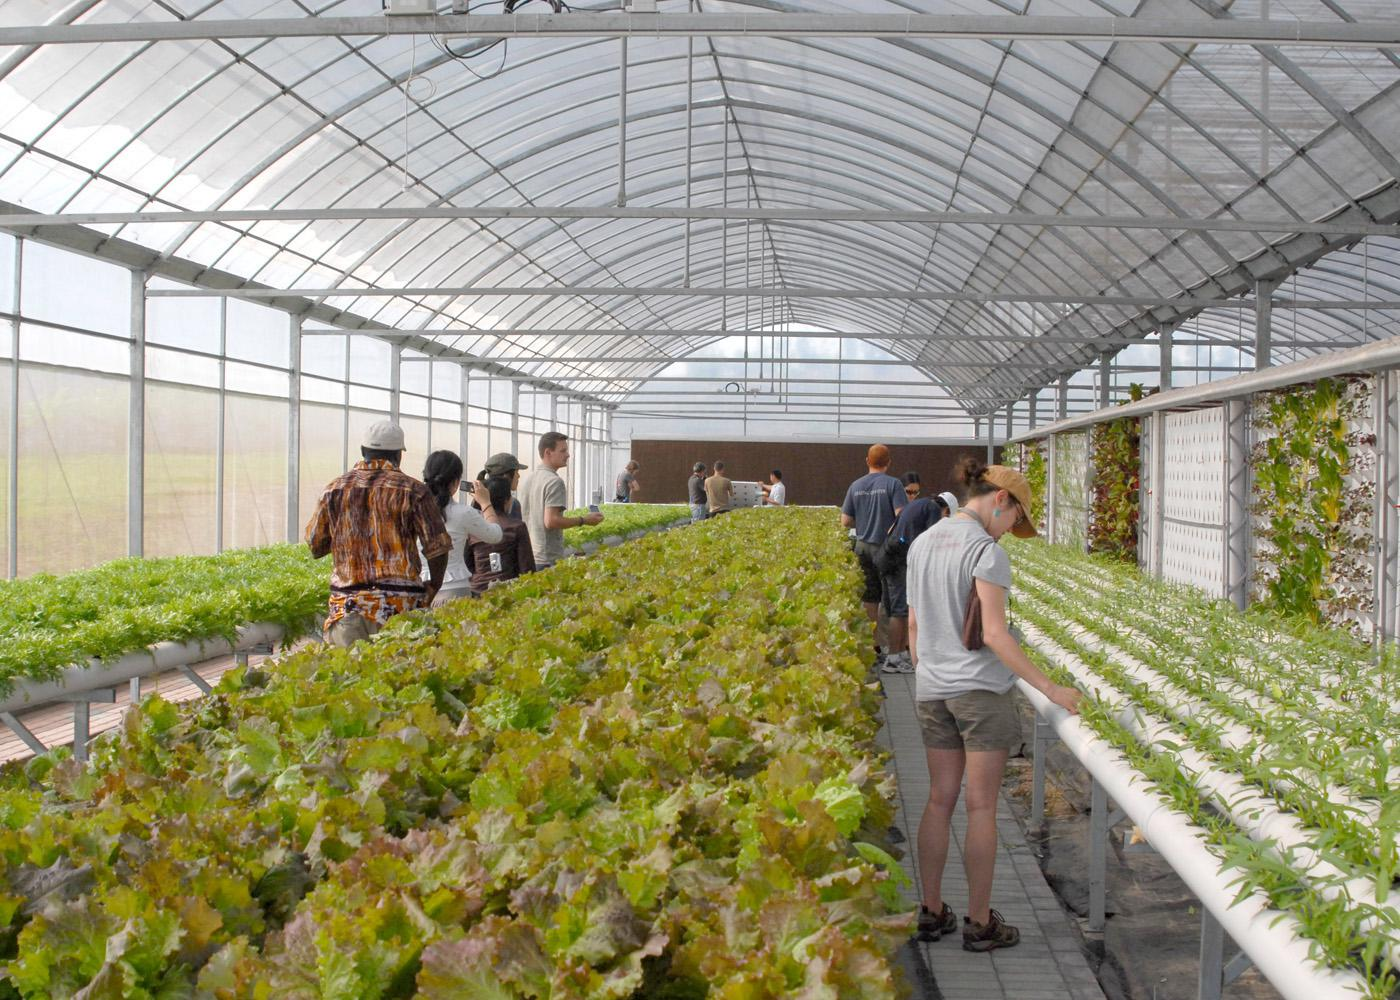 Unheated greenhouses that capture the sun's heat, allowing crops to be grown earlier or later than normal, are called high tunnels. MSU students visited several high tunnels, such as this one growing cucumbers in bags with drip fertigation in Ag Demonstration Park in Nanjing, Jiangsu Province in East China. (Photo provided by University of Arkansas/Jim Robbins)